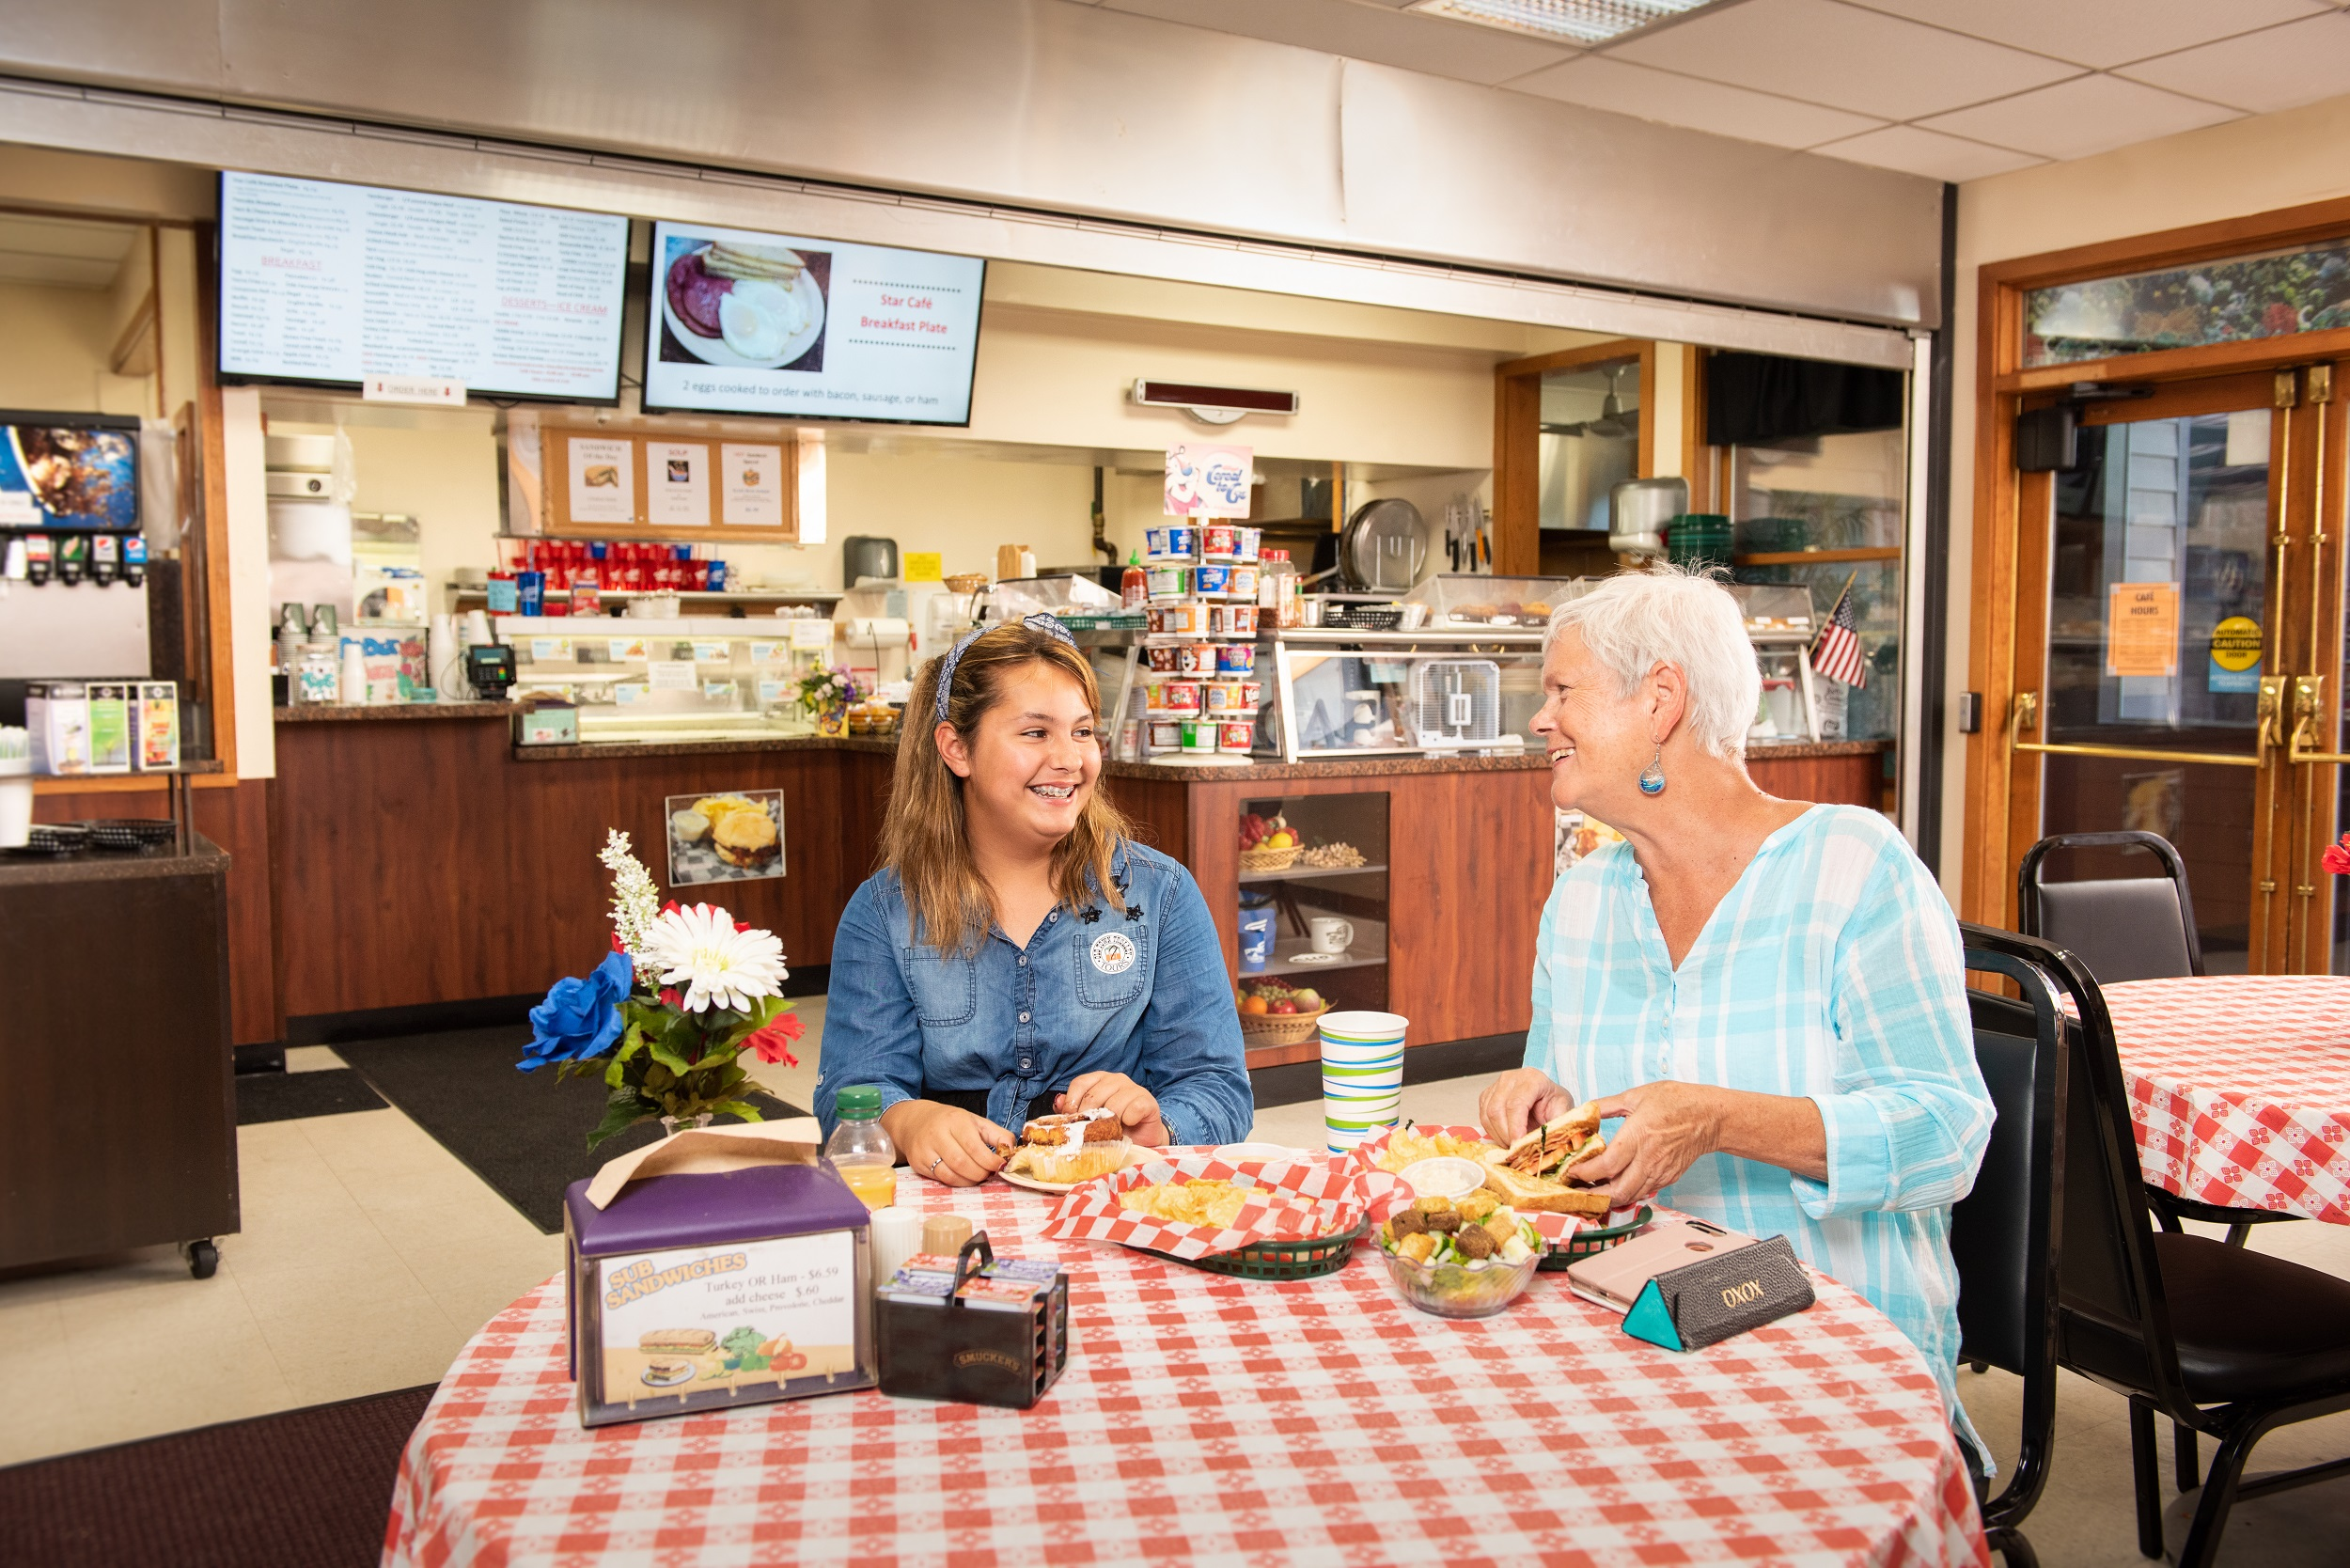 Our on-site cafe serves breakfast, lunch, dinner, and hand-dipped ice cream.